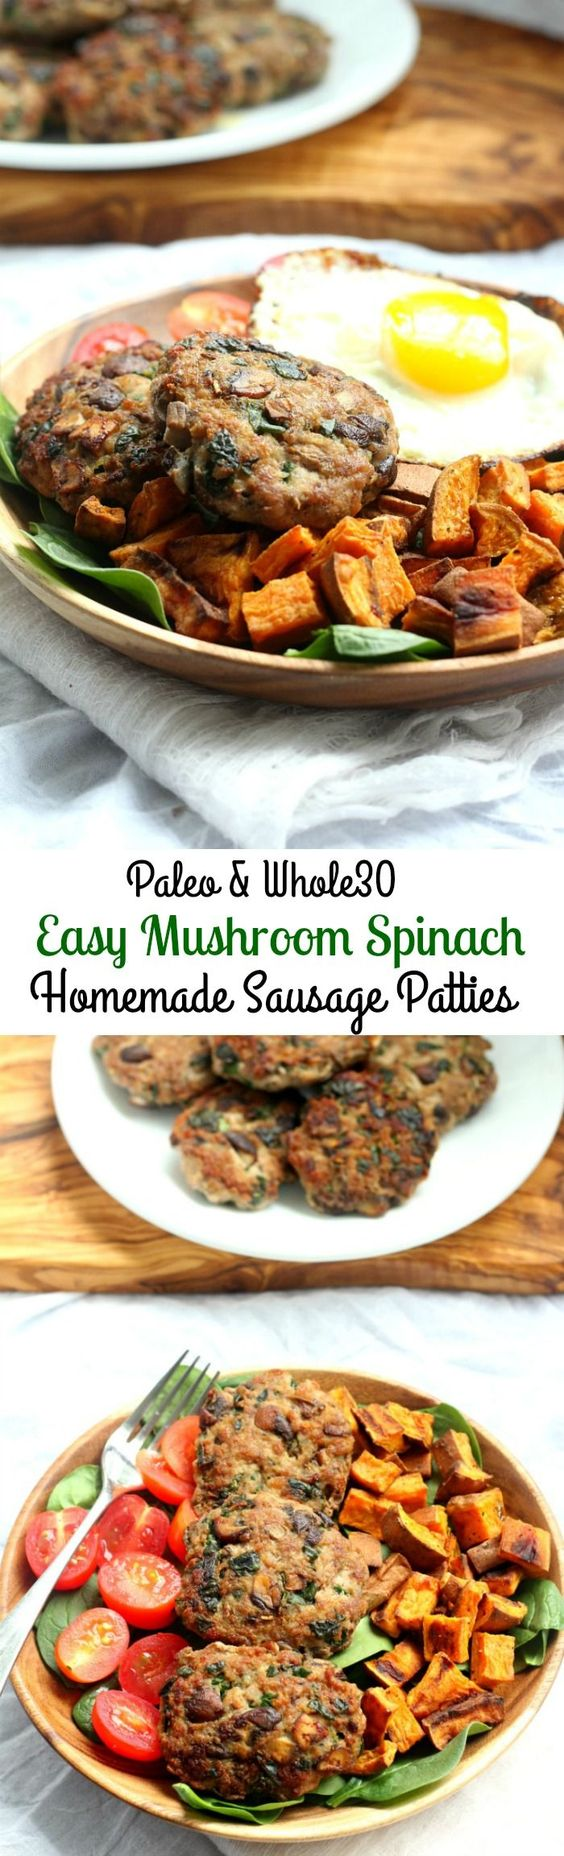 Mushroom Spinach Easy Homemade Pork Sausage Patties that are Paleo and ...